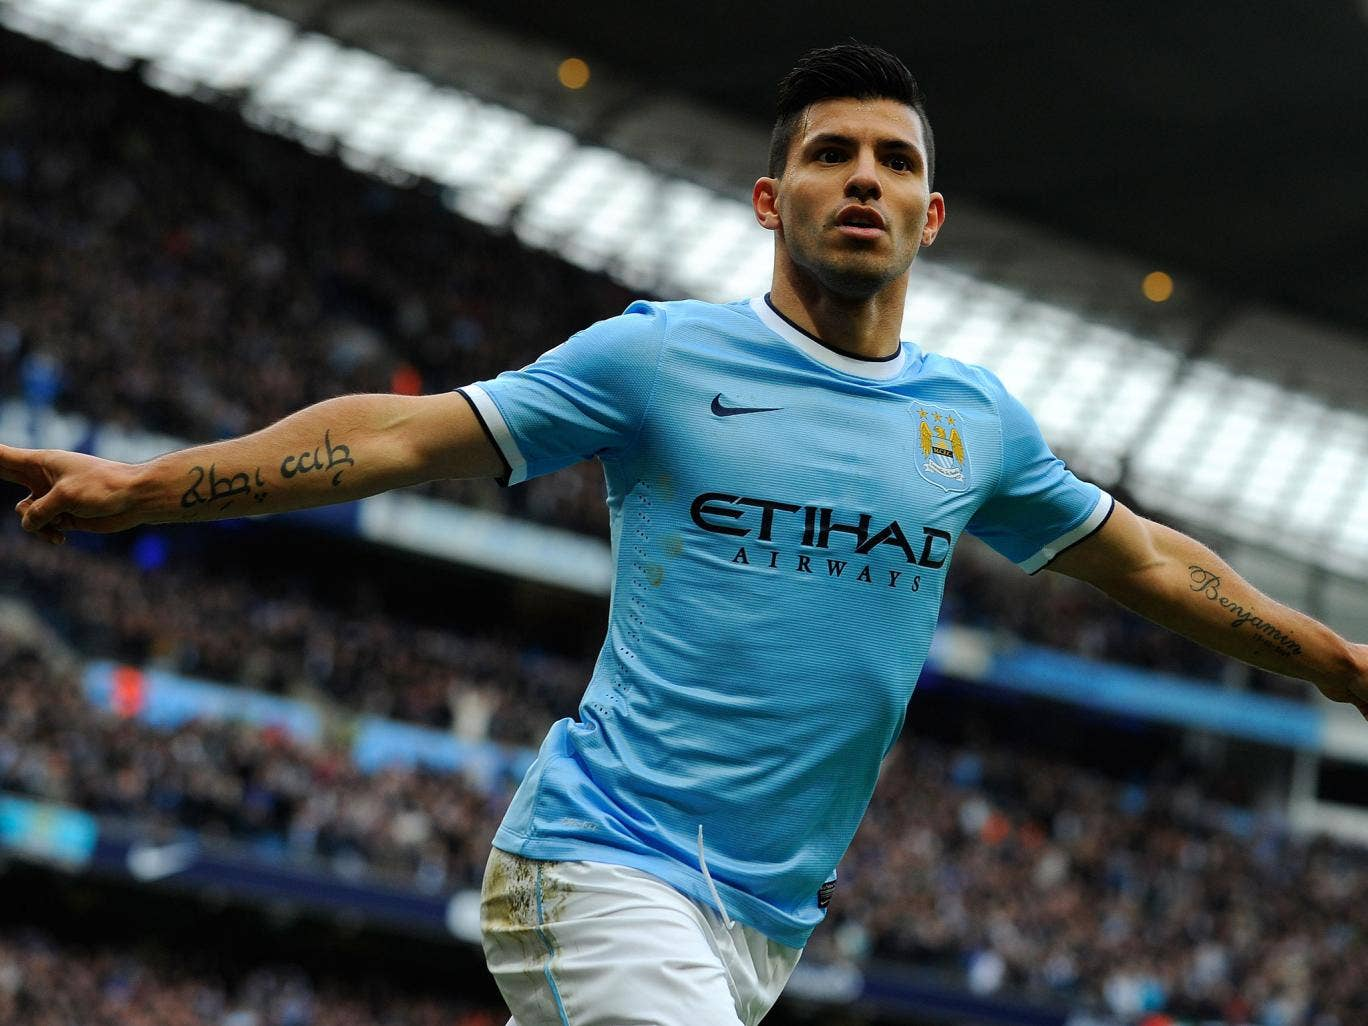 Manchester City striker Sergio Aguero could return before the end of January after his calf injury appeared not as bad as first feared